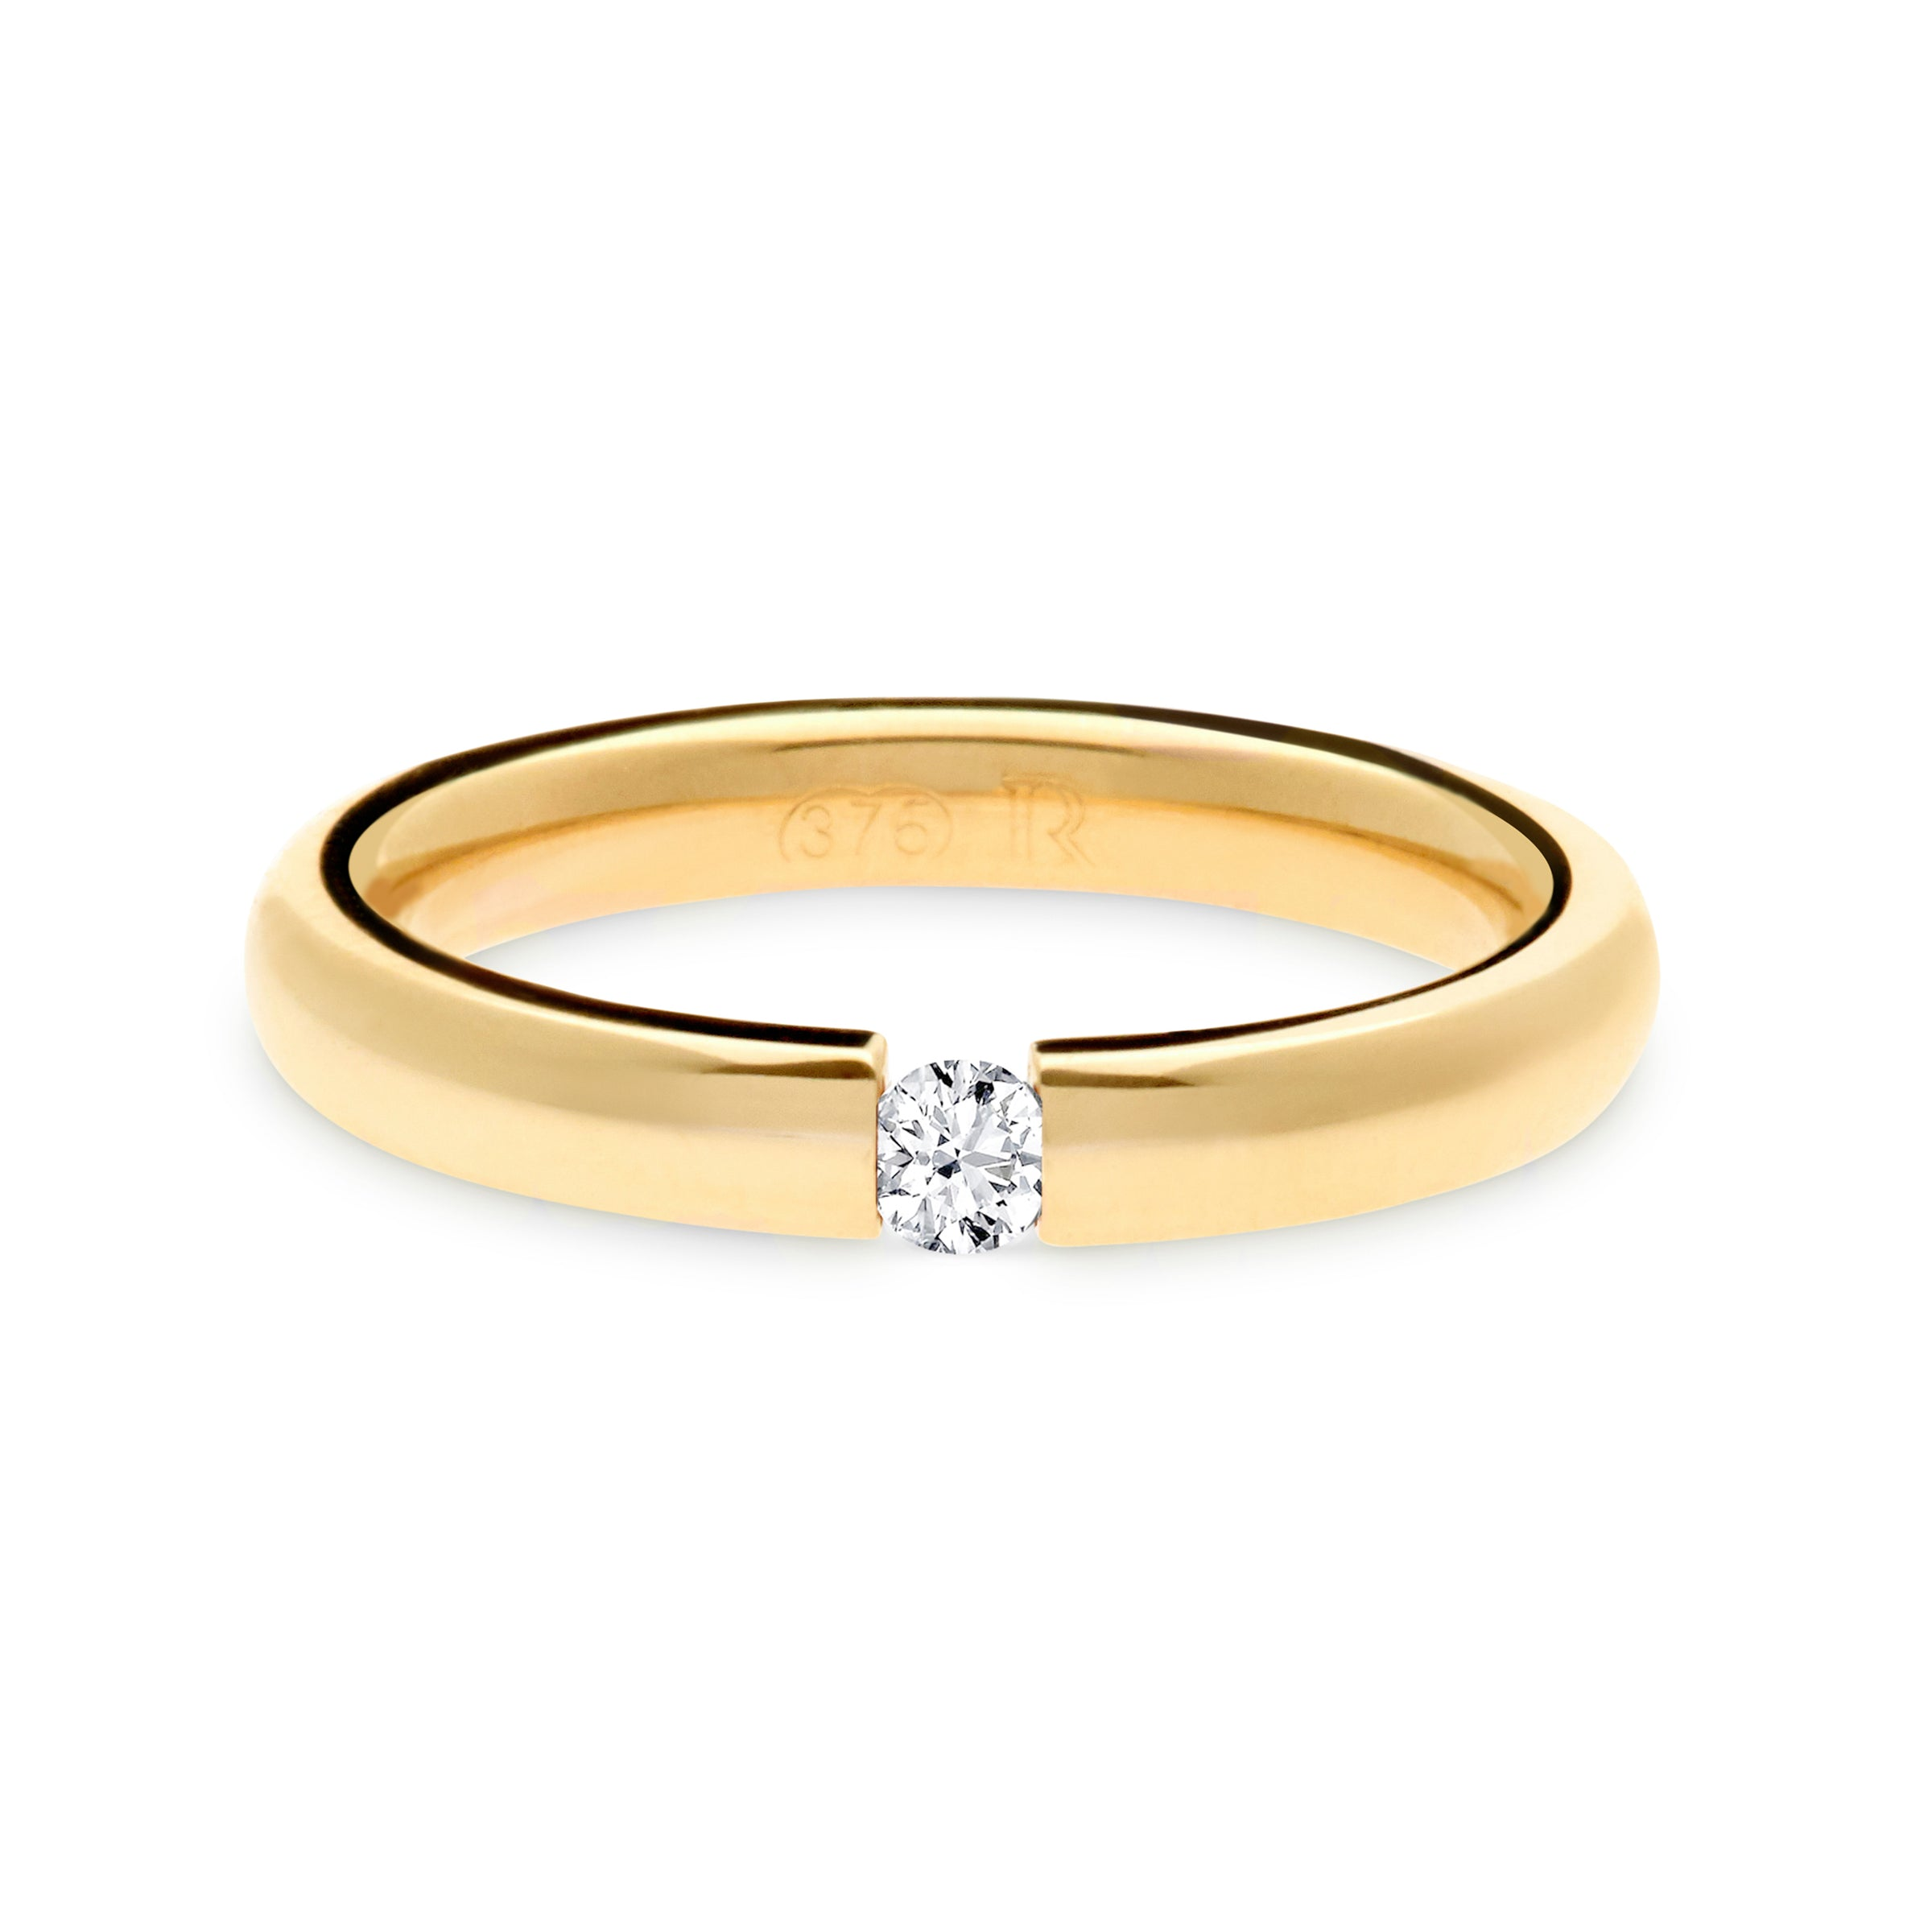 Tension set diamond wedding ring Australia